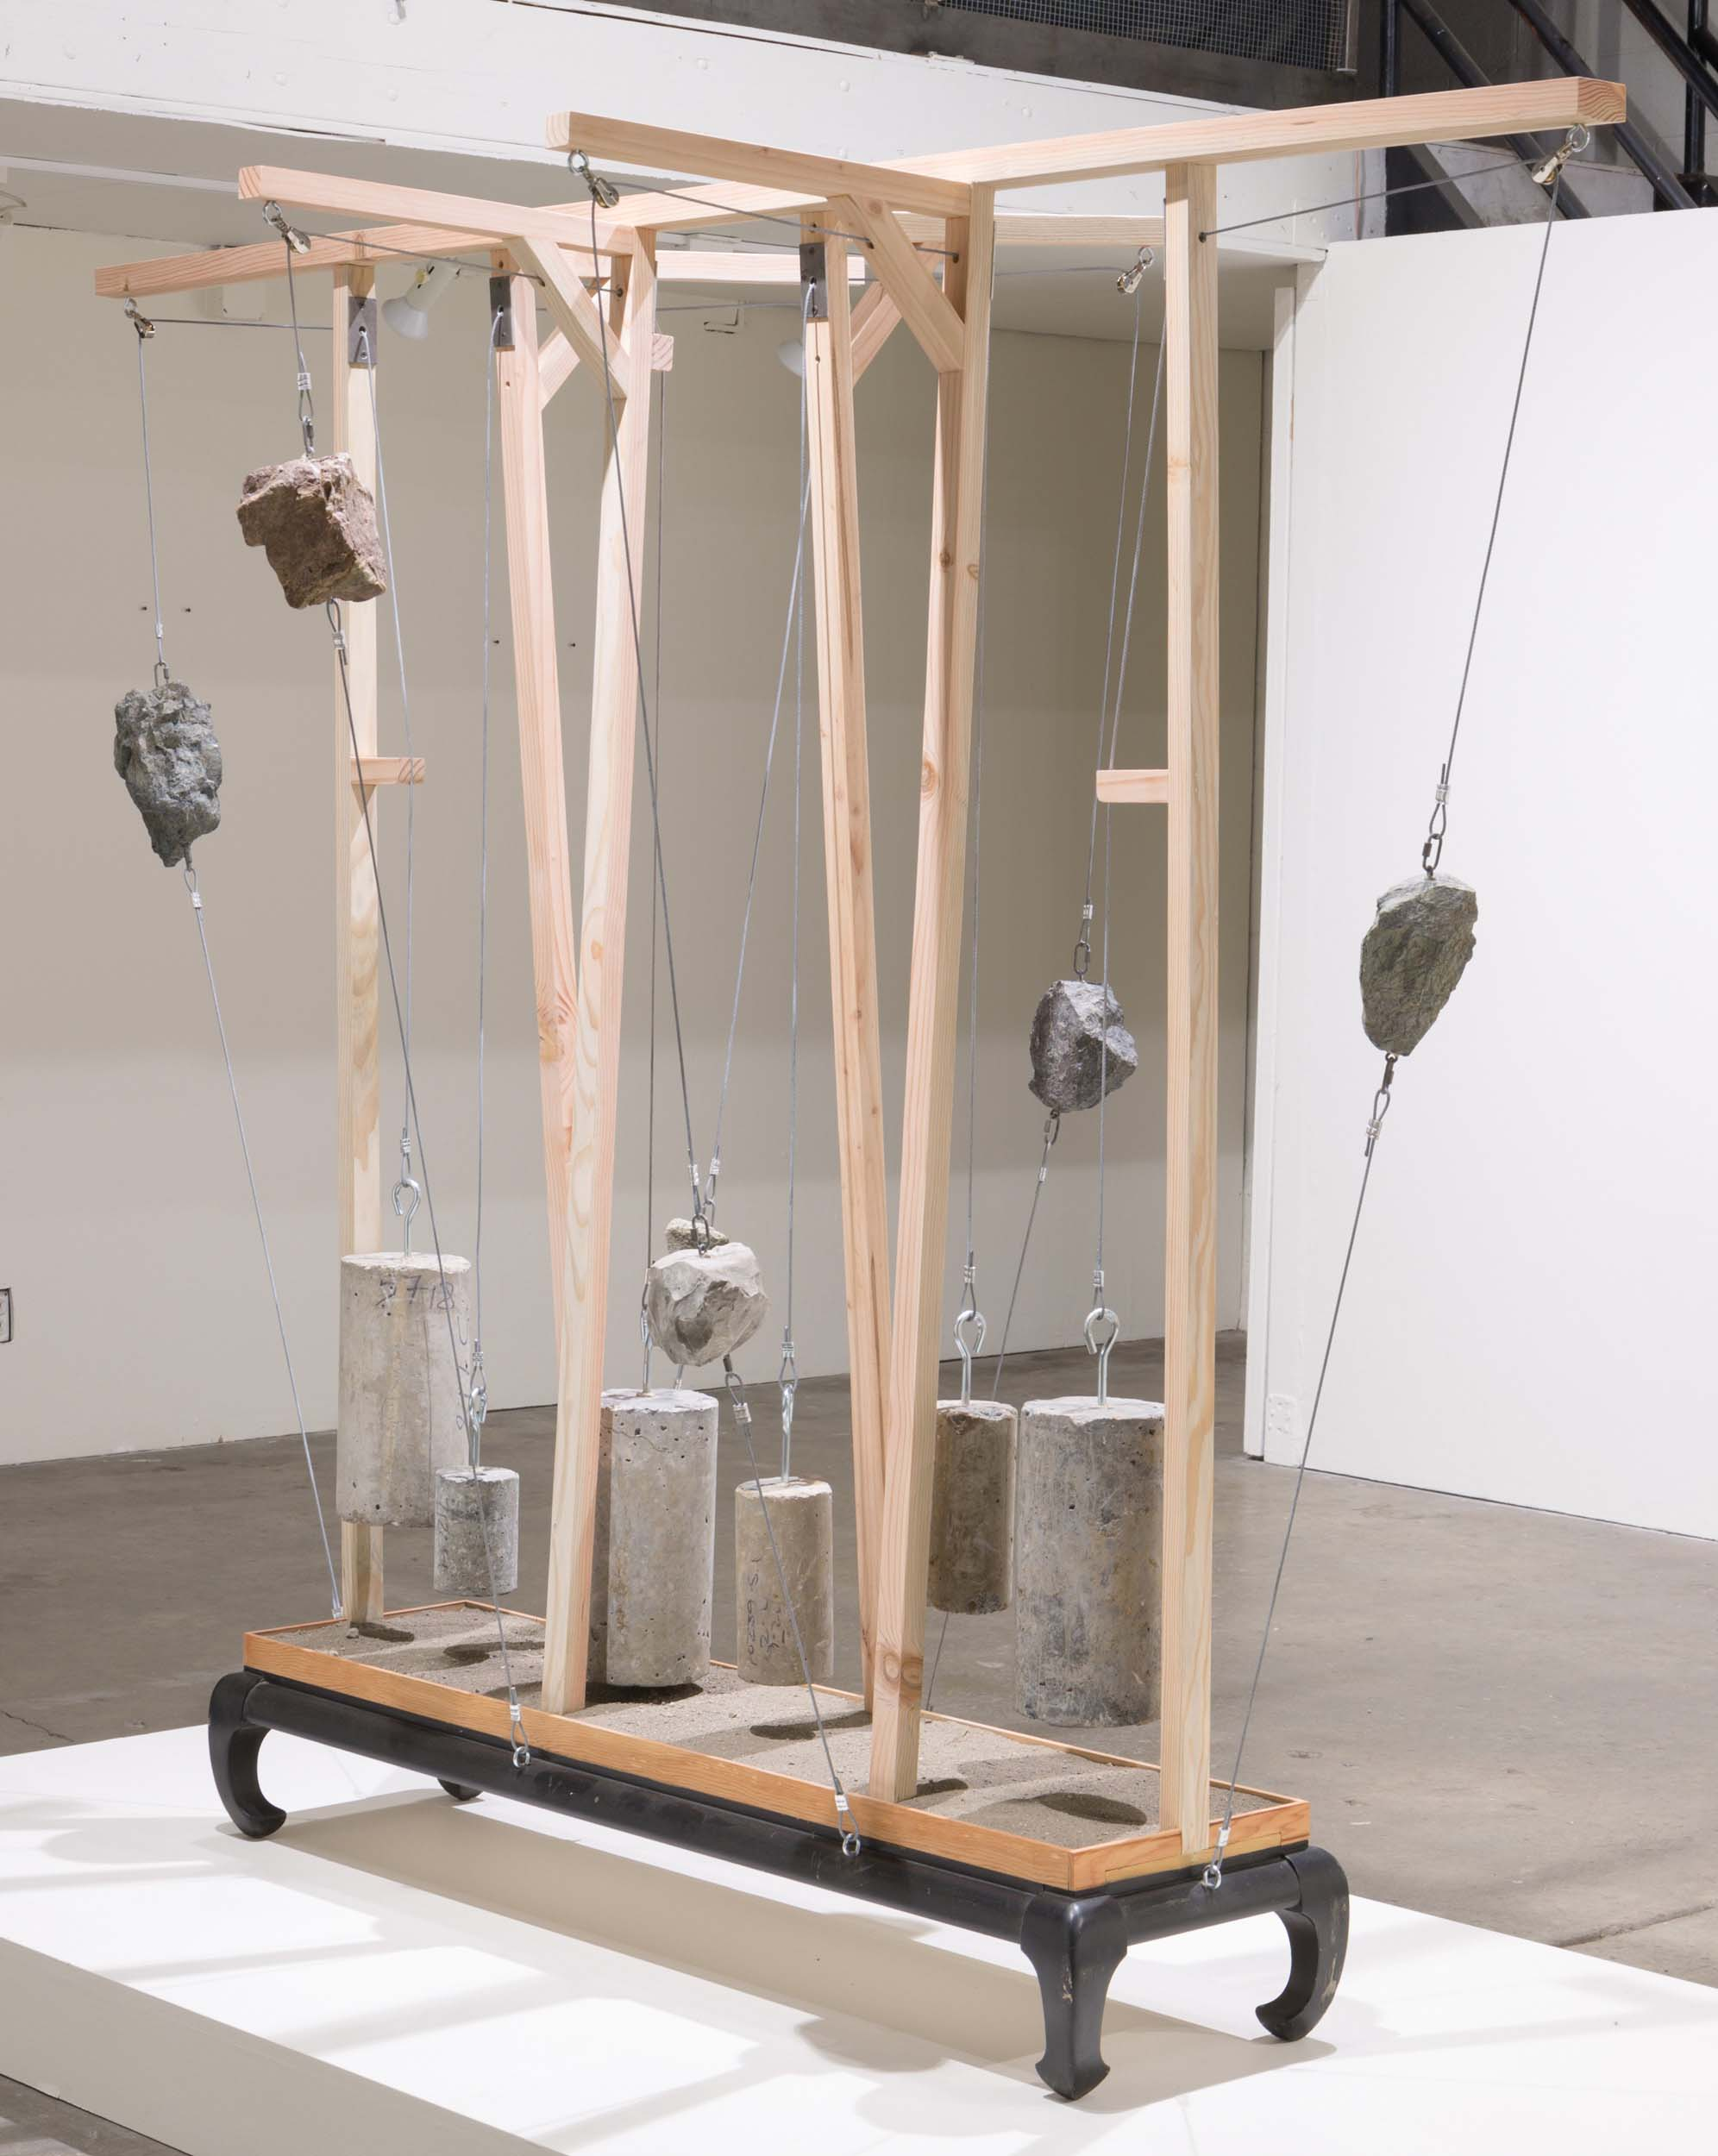 "Mark Baugh-Sasaki, Willing Suspension Concrete, San Francisco bedrock (chert, shale, serpentine), earth, wood, steel cable and cabinet base 92"" x 44"" x 74"" 2019"